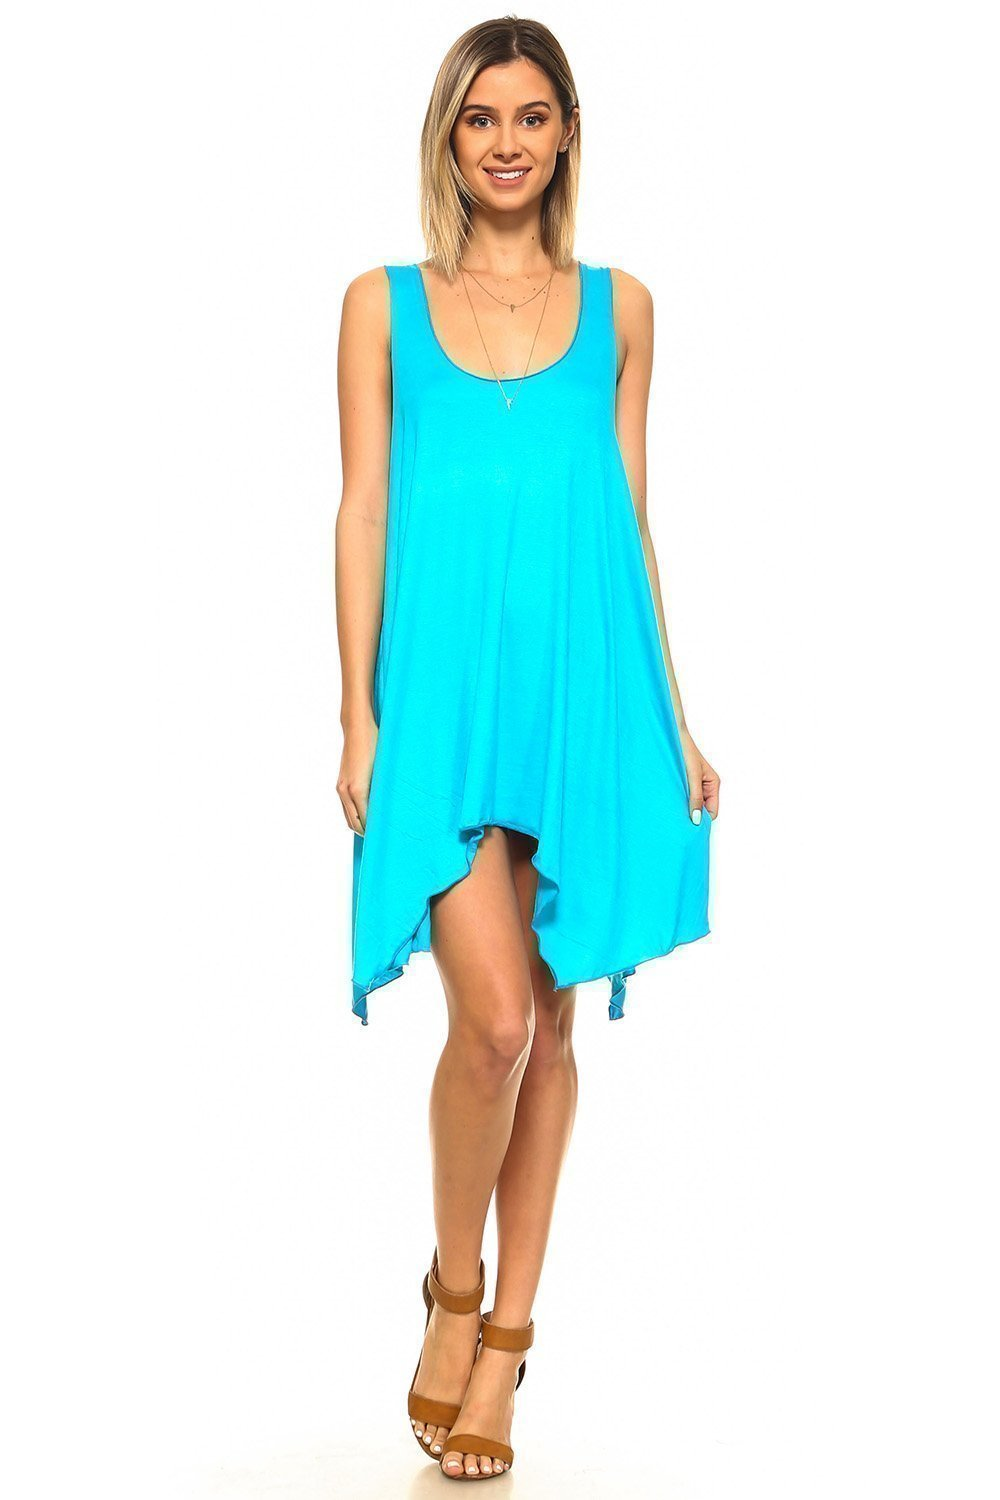 Simplicitie Women's Sleeveless Swing Flare Dress Tunic Tank Top - Regular and Plus Size - Turquoise - Made in USA